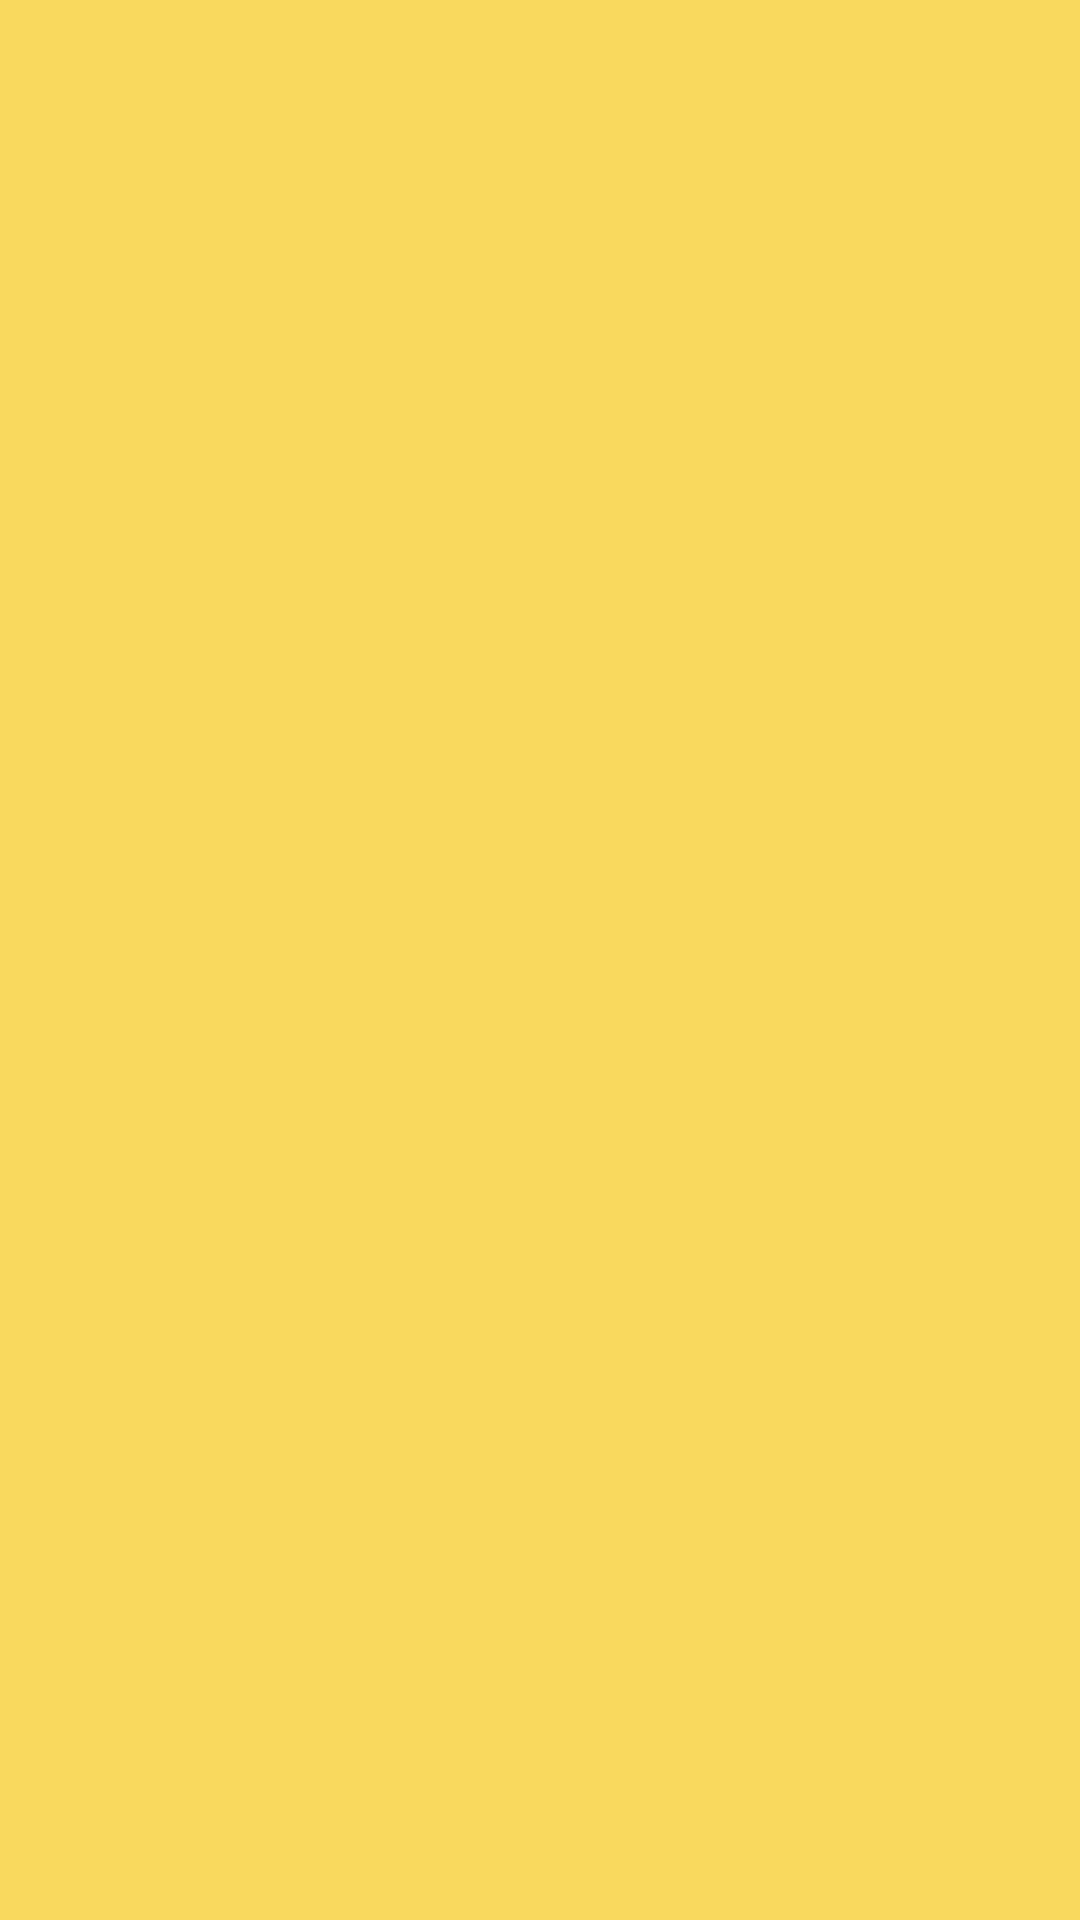 1080x1920 Naples Yellow Solid Color Background